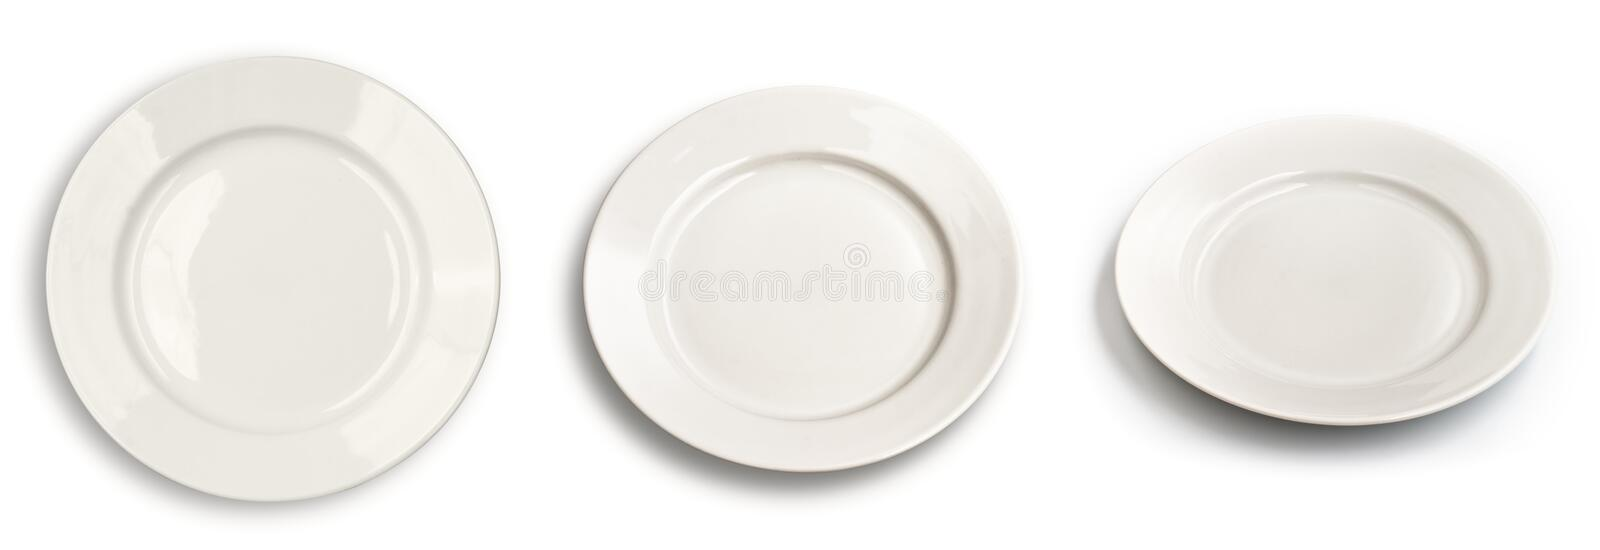 Download Set Of Round Plates Isolated On White  Top View Stock Image - Image: 15307029